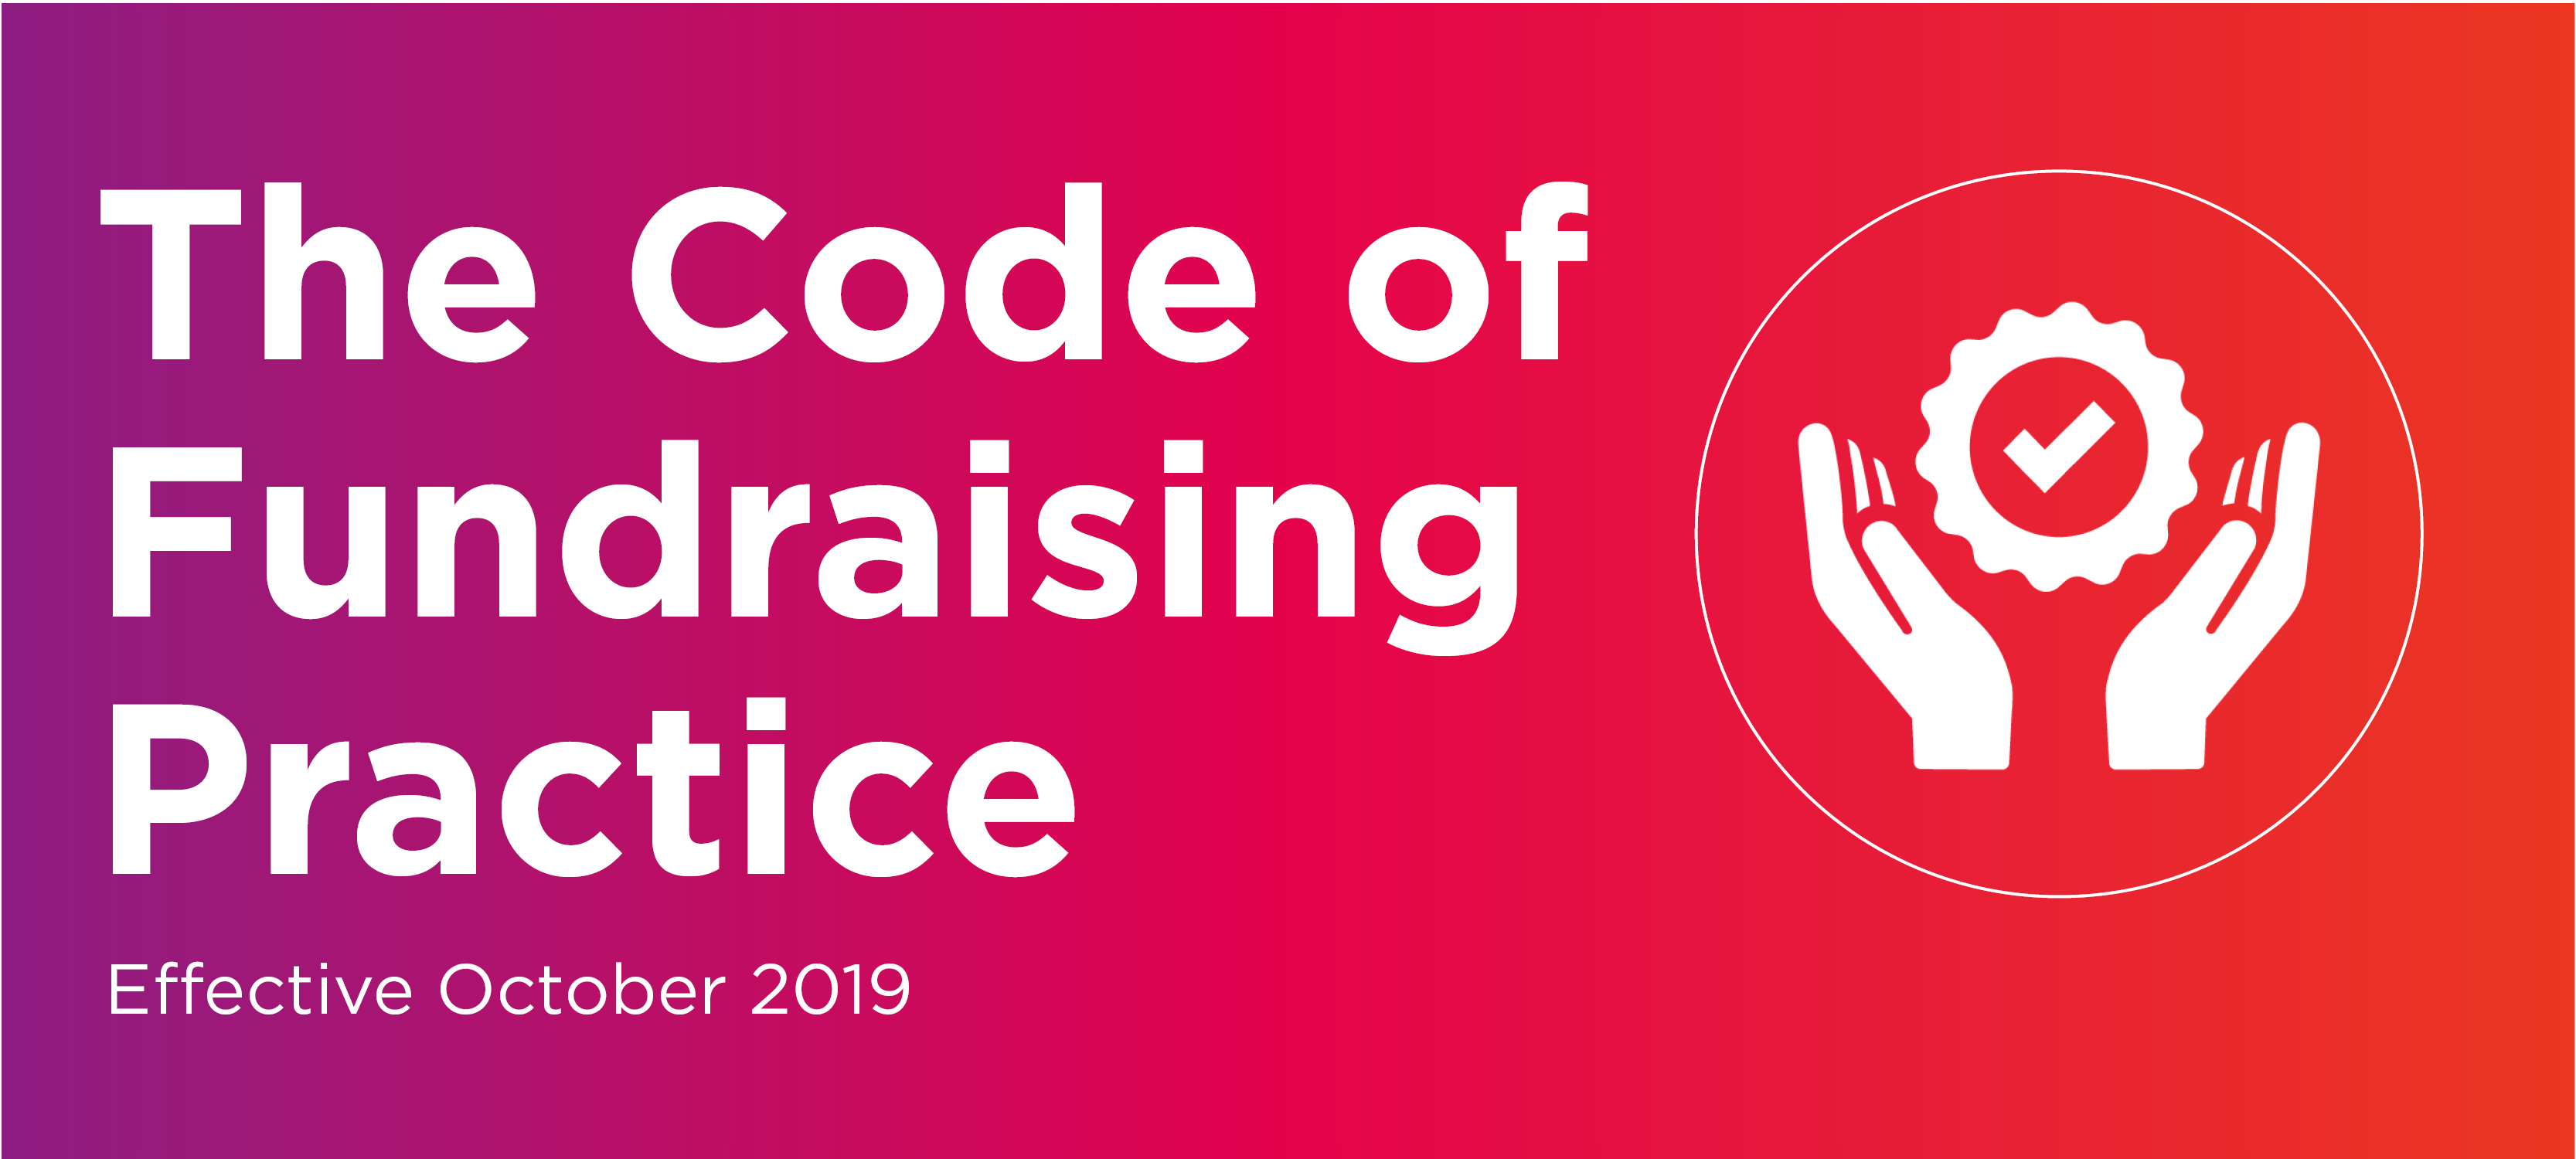 New Code of Fundraising Practice